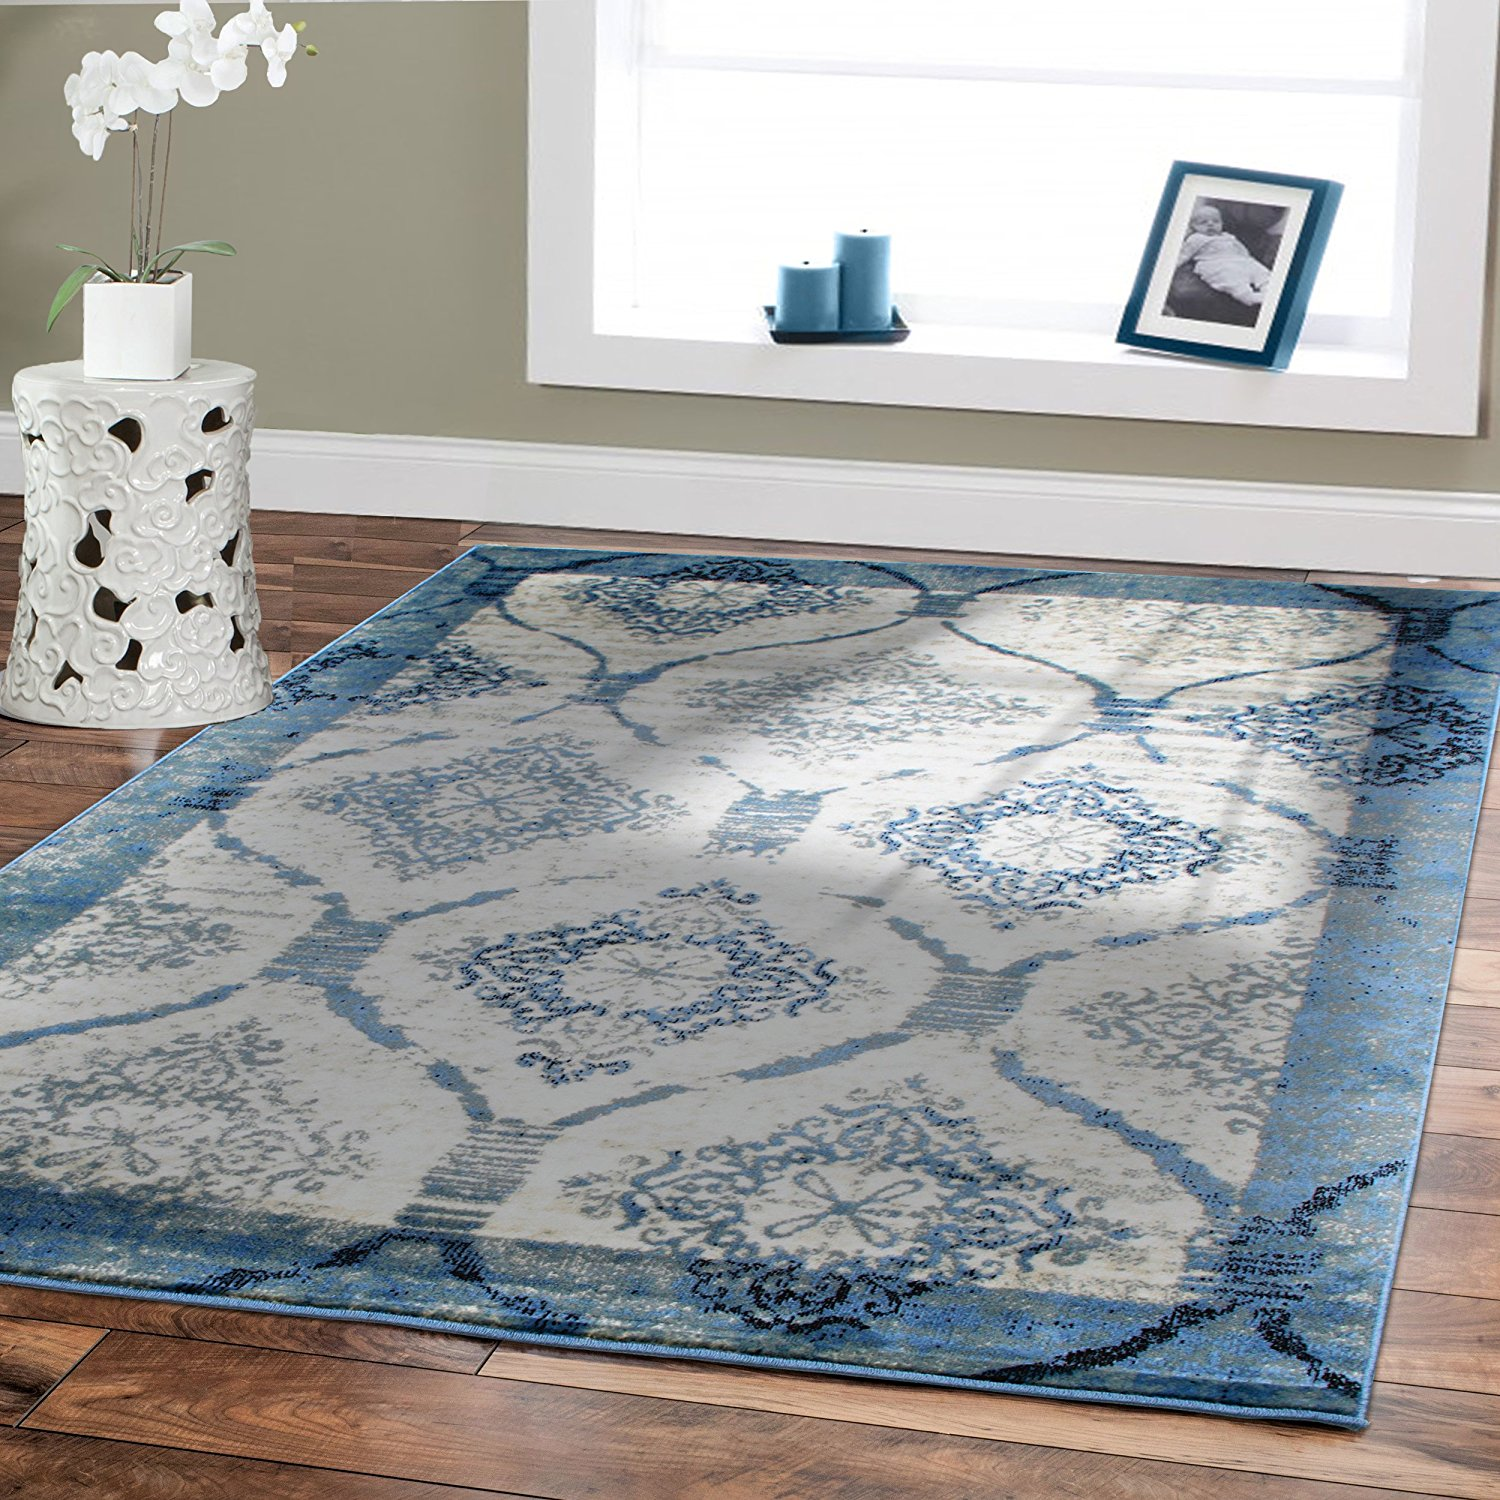 Premium Soft Area Rugs for Living room 5x7 under150 Blue Dining Room Rugs for Under the Table 5x8 Contemporary Area Rug